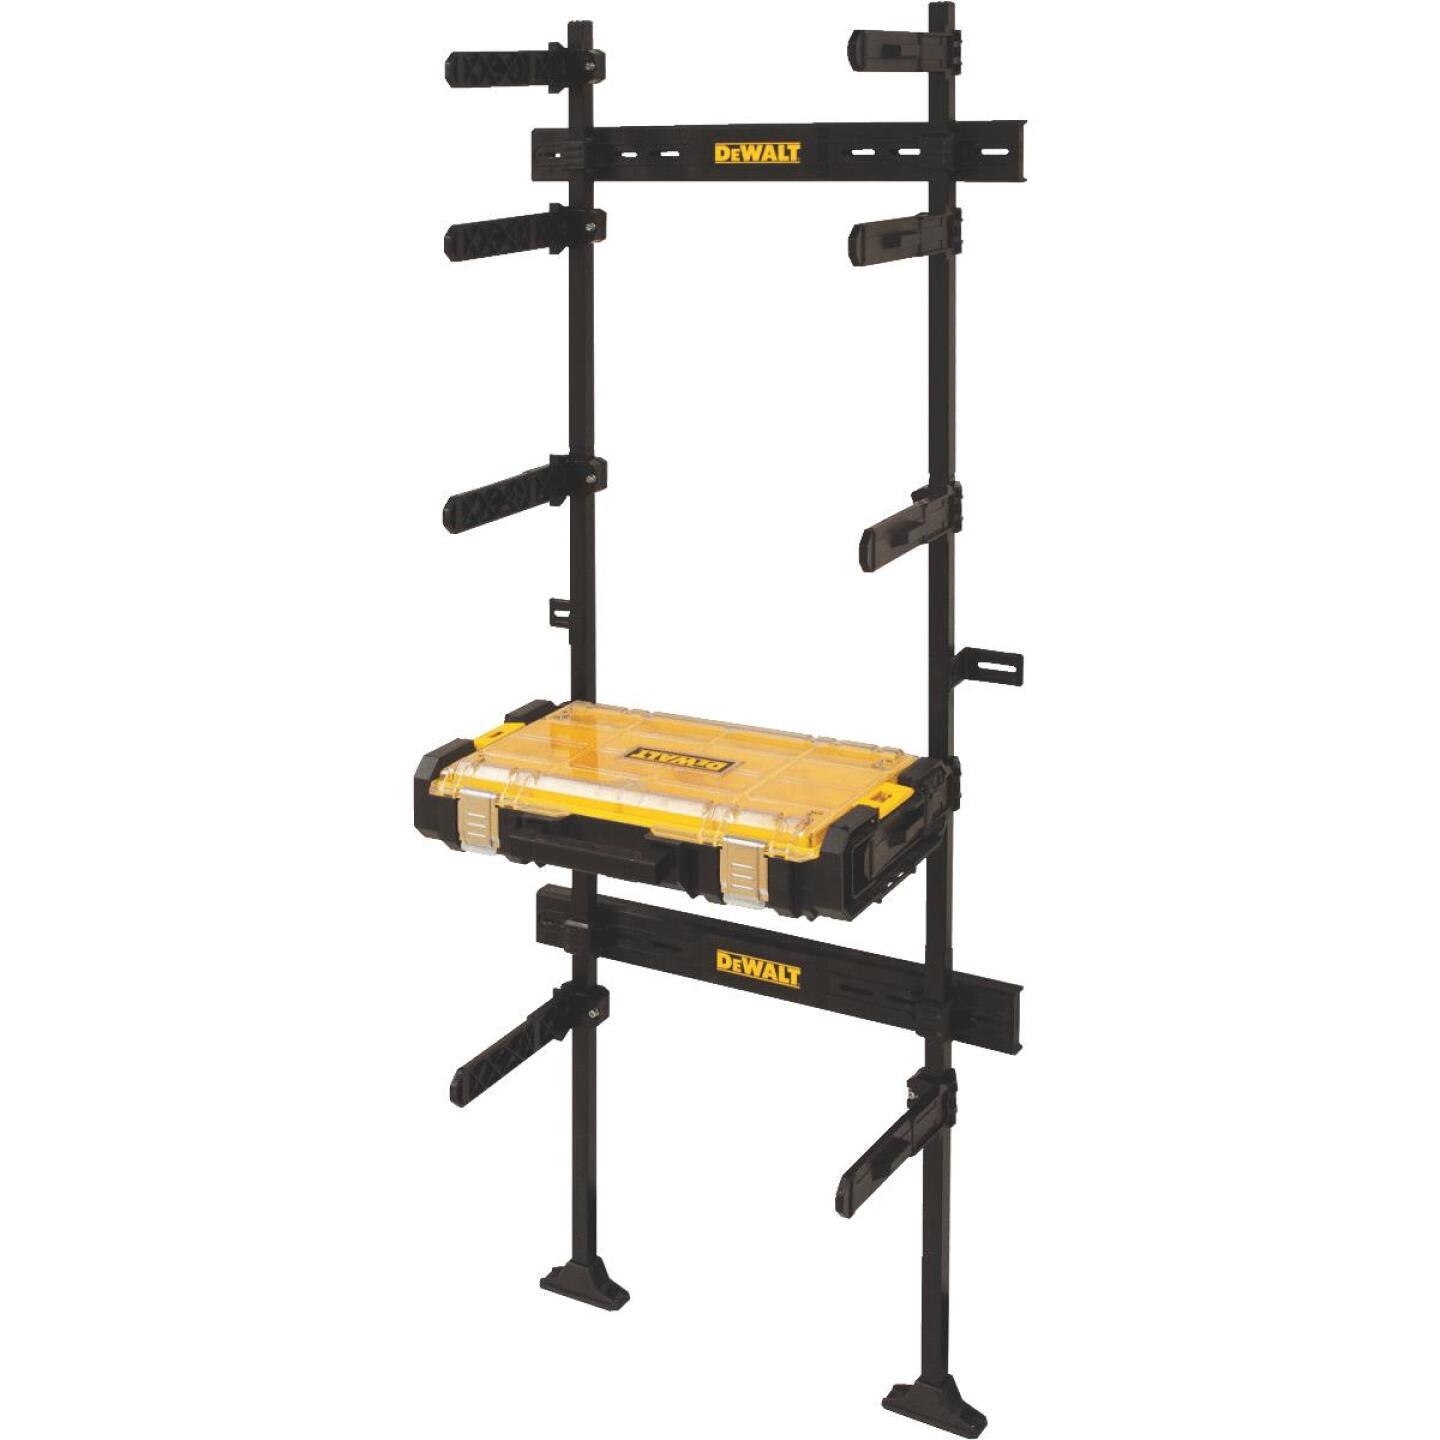 DeWalt ToughSystem 25.5 In. L Workshop Racking/Tool Cart with Organizer Image 1